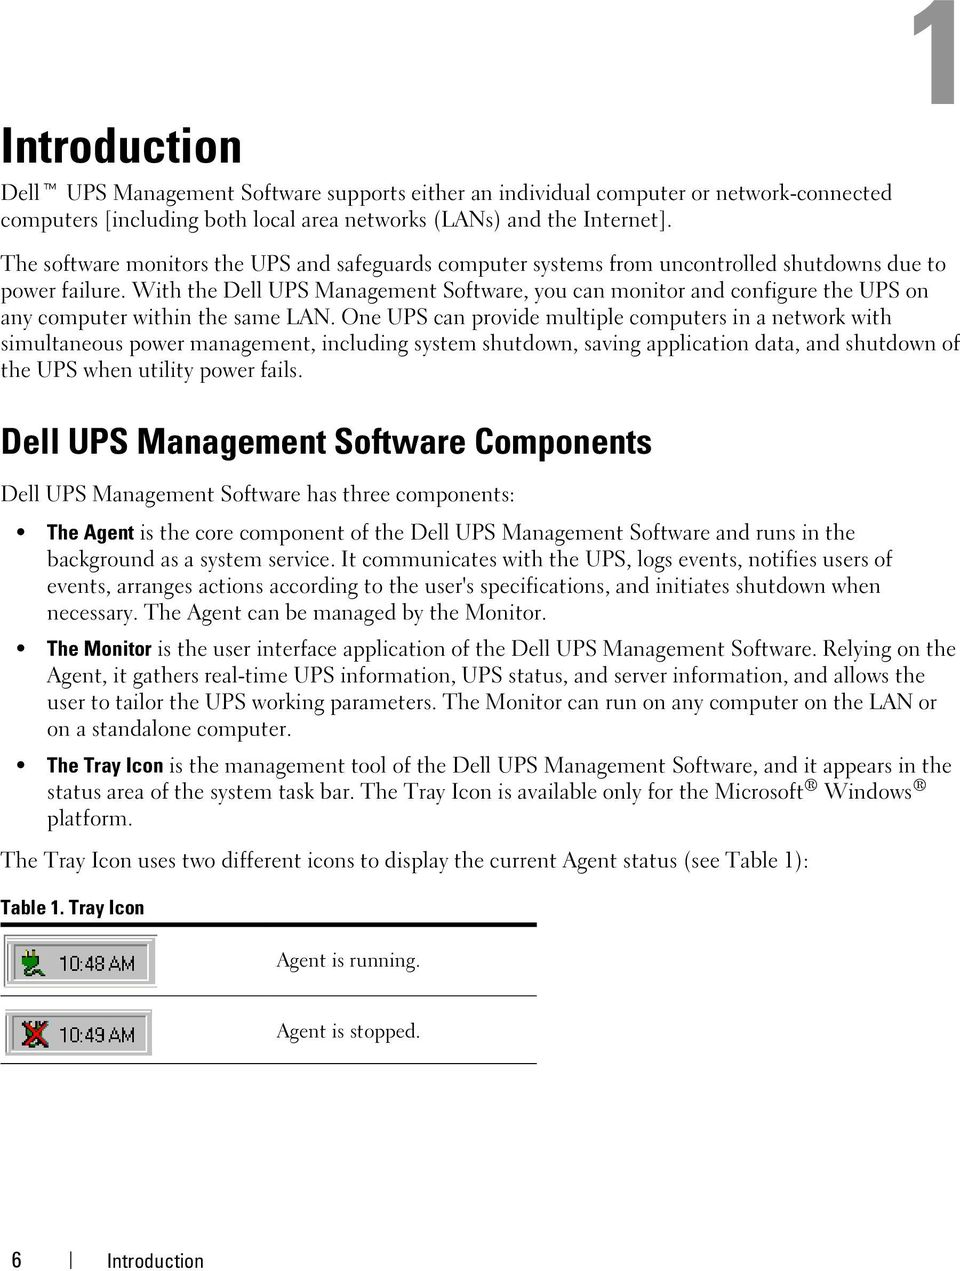 With the Dell UPS Management Software, you can monitor and configure the UPS on any computer within the same LAN.